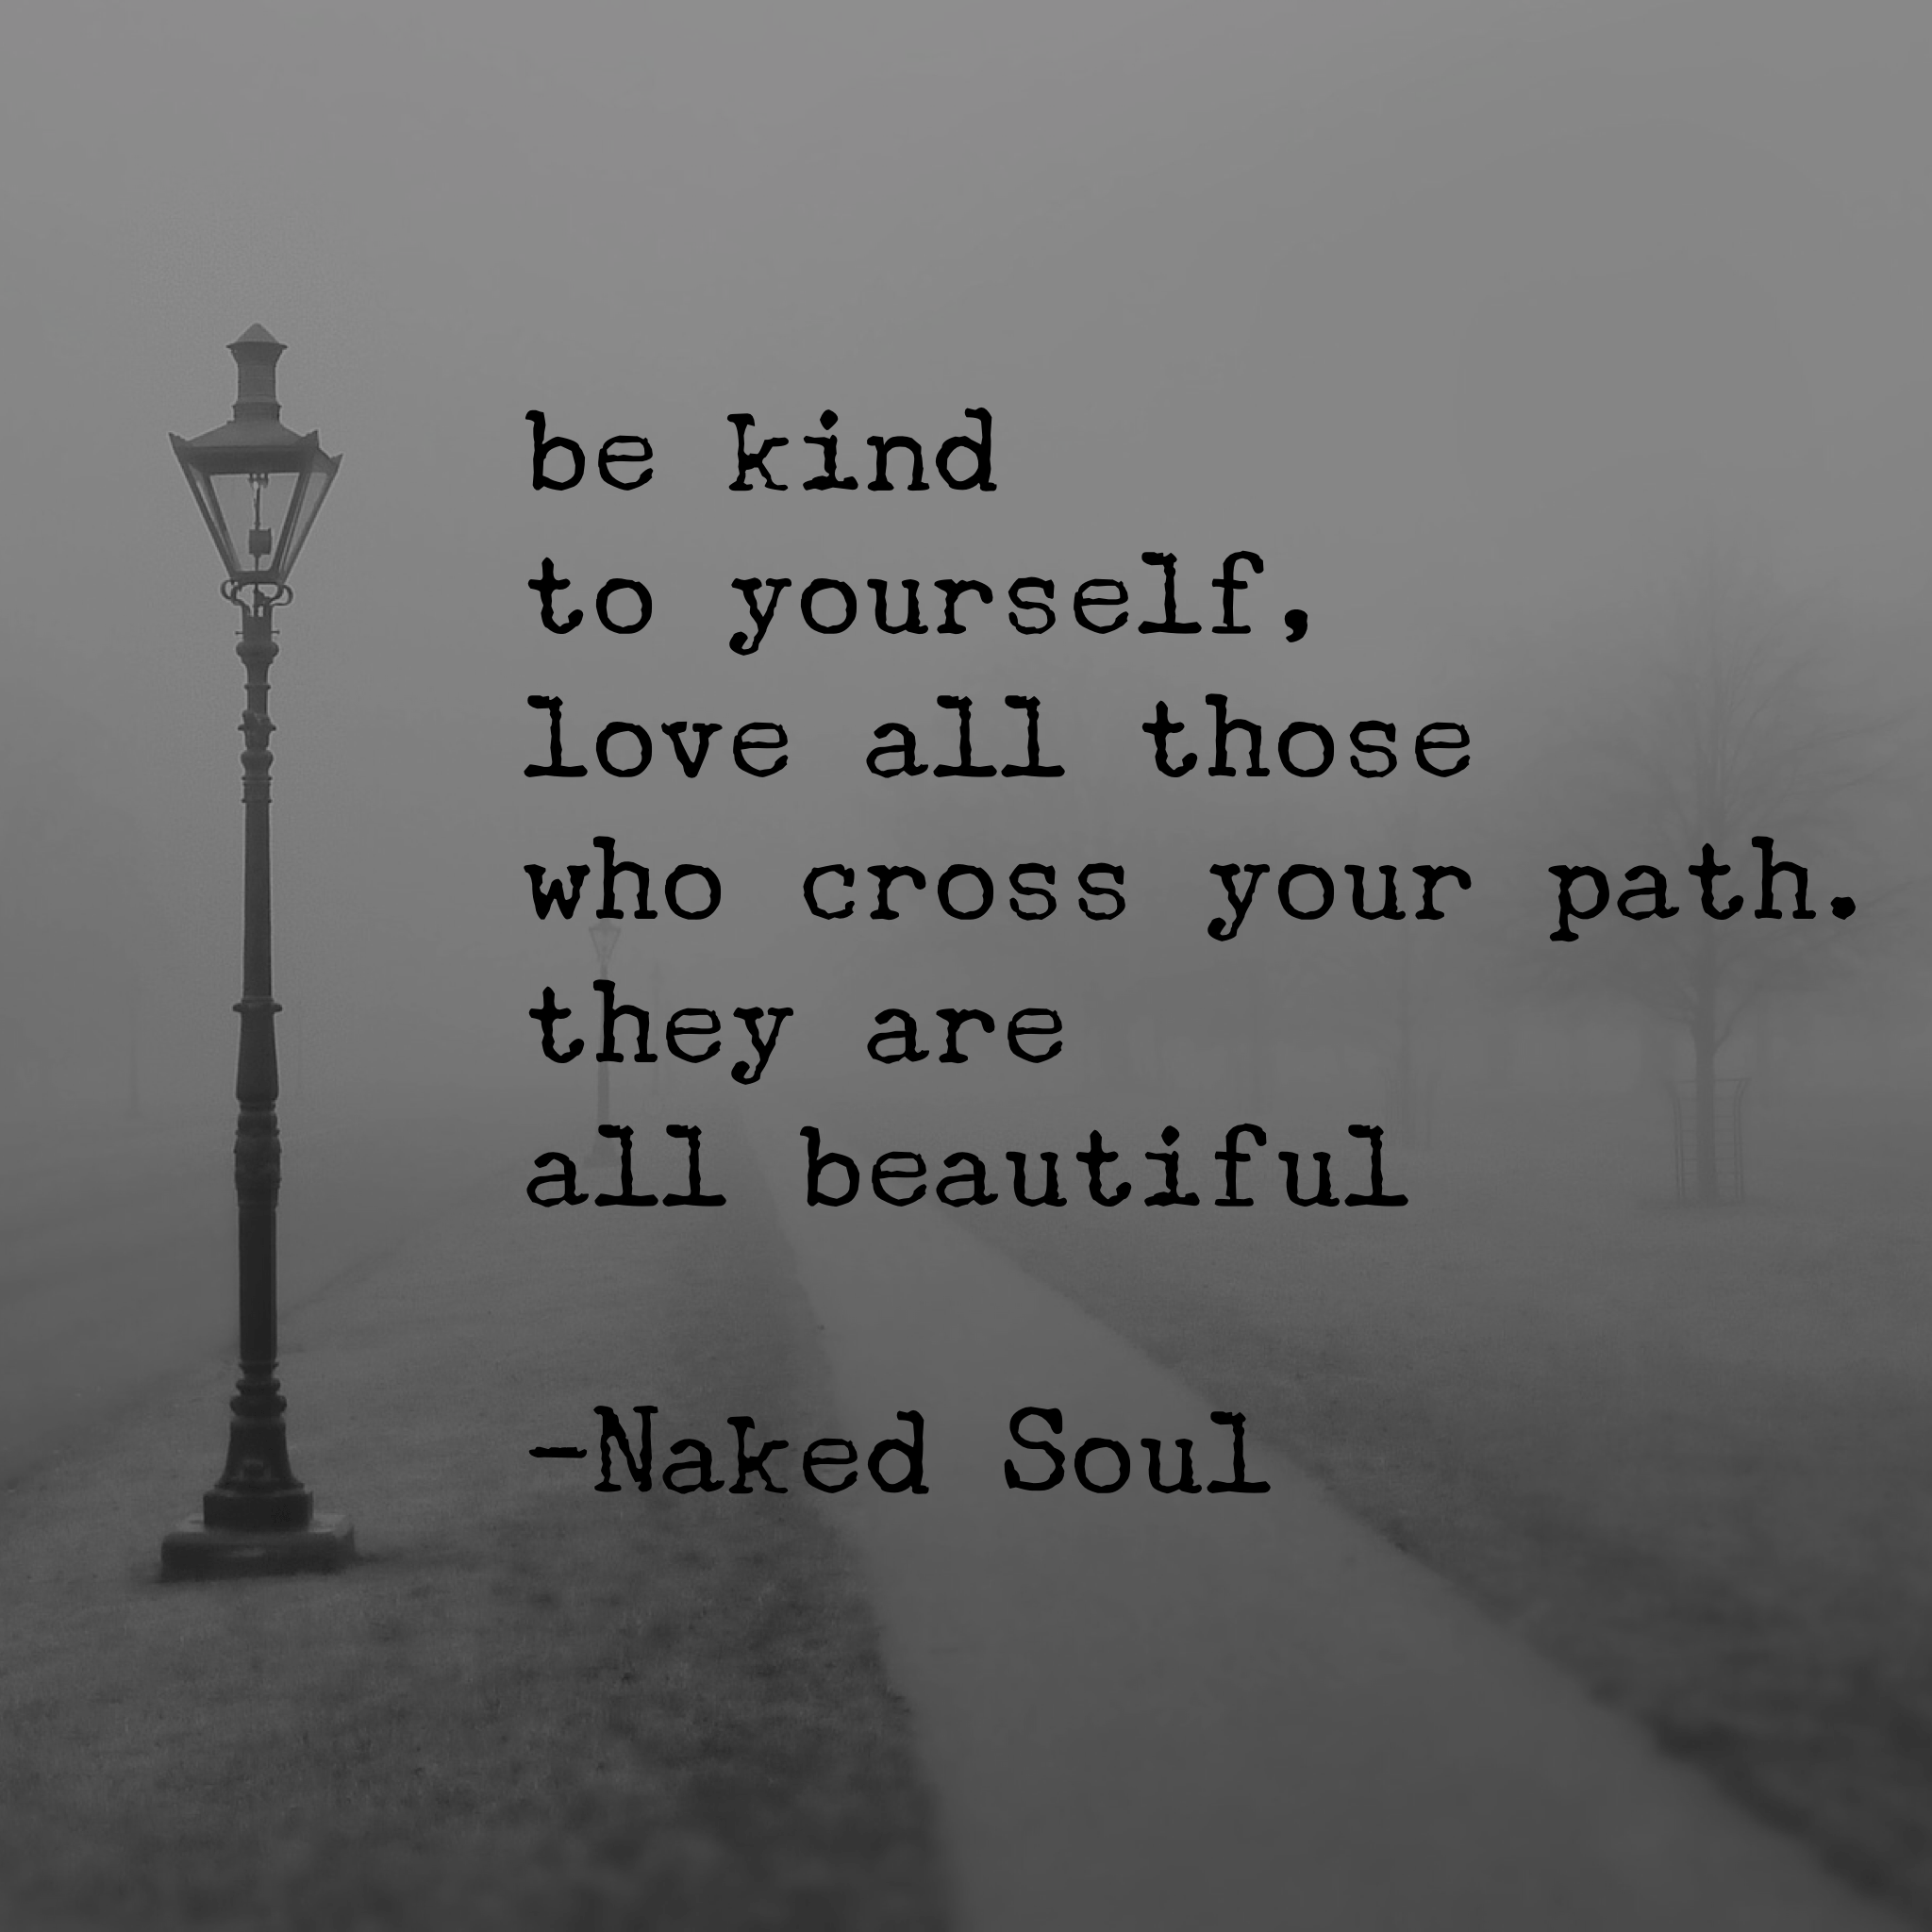 be kind to yourself, love all those who cross your path. they are all beautiful